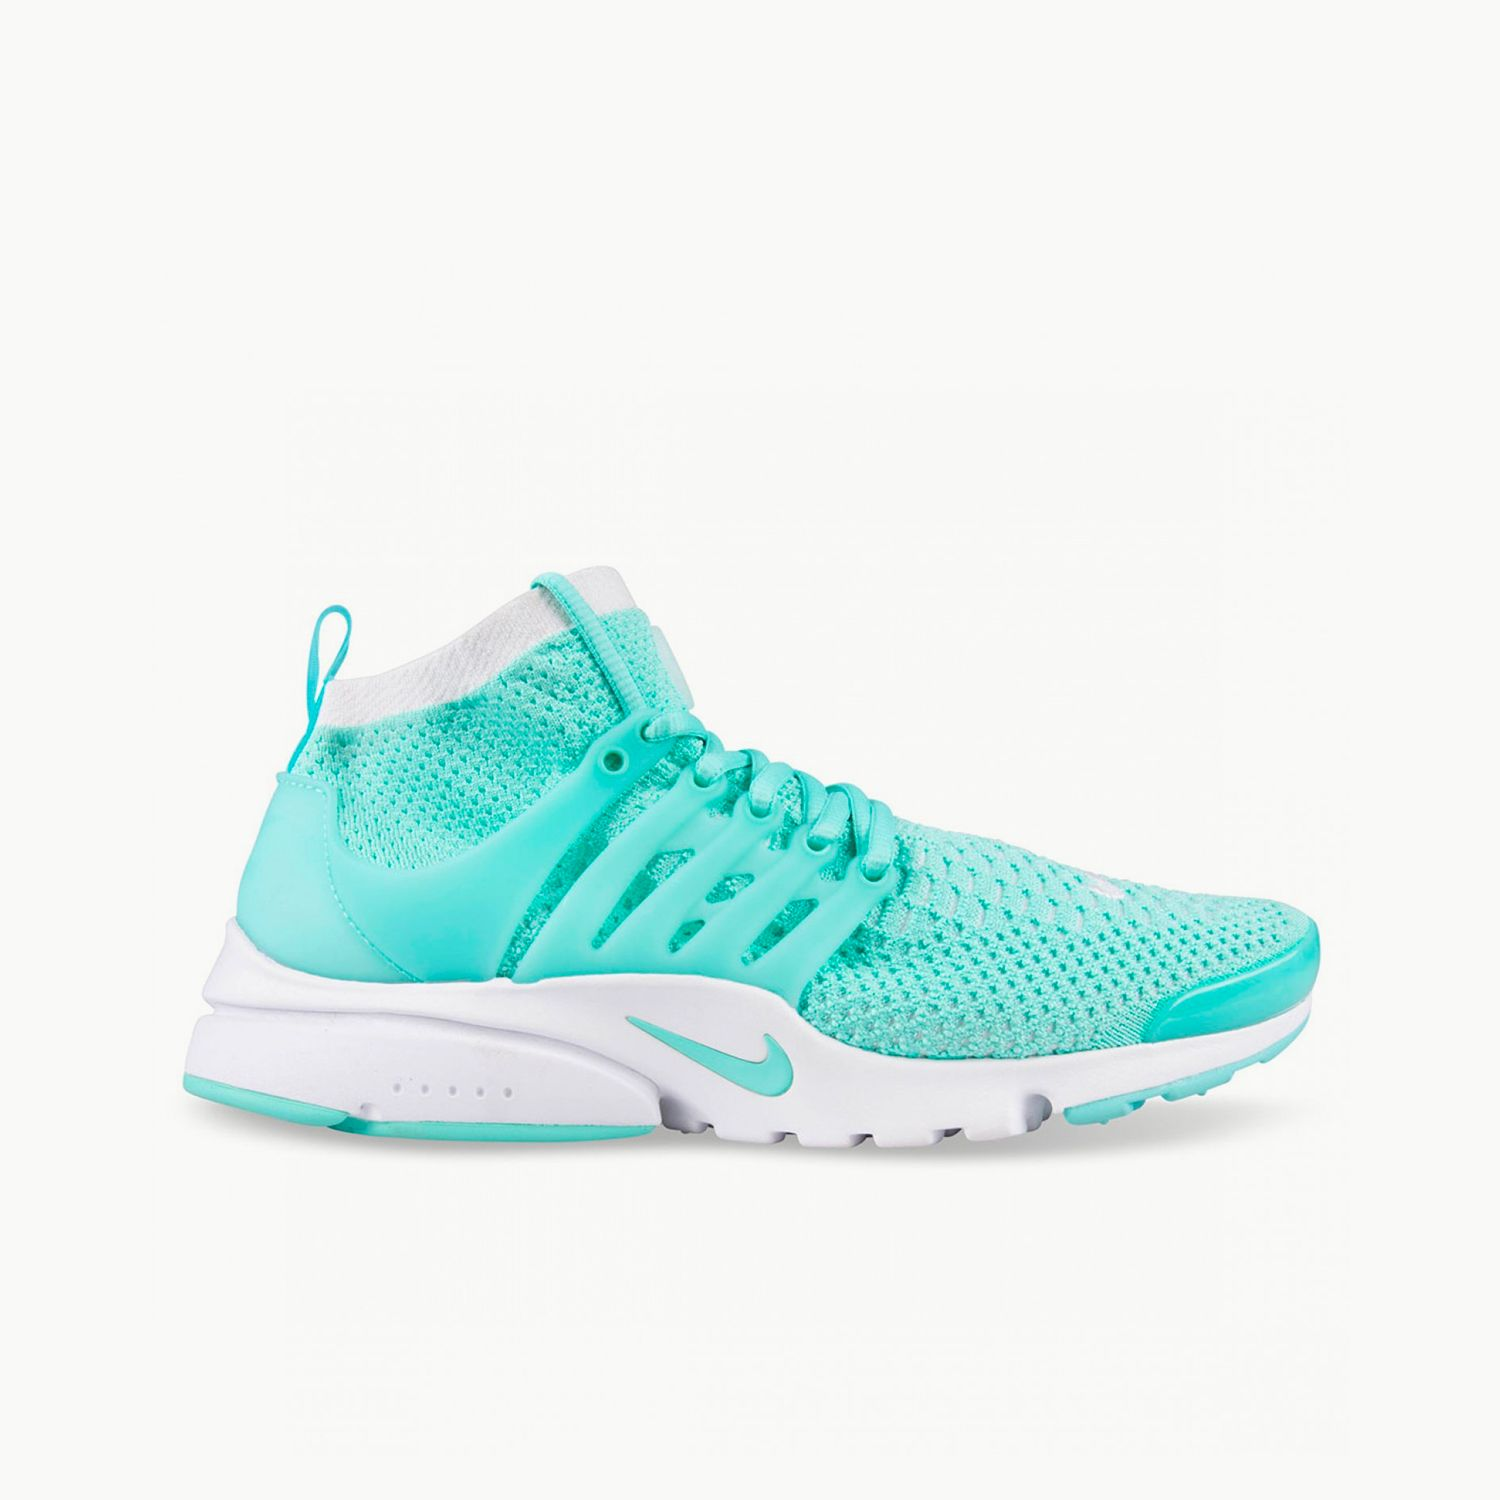 Nike AIR PRESTO ULTRA FLYKNIT WOMENS Hyper Turquoise/Turquoise